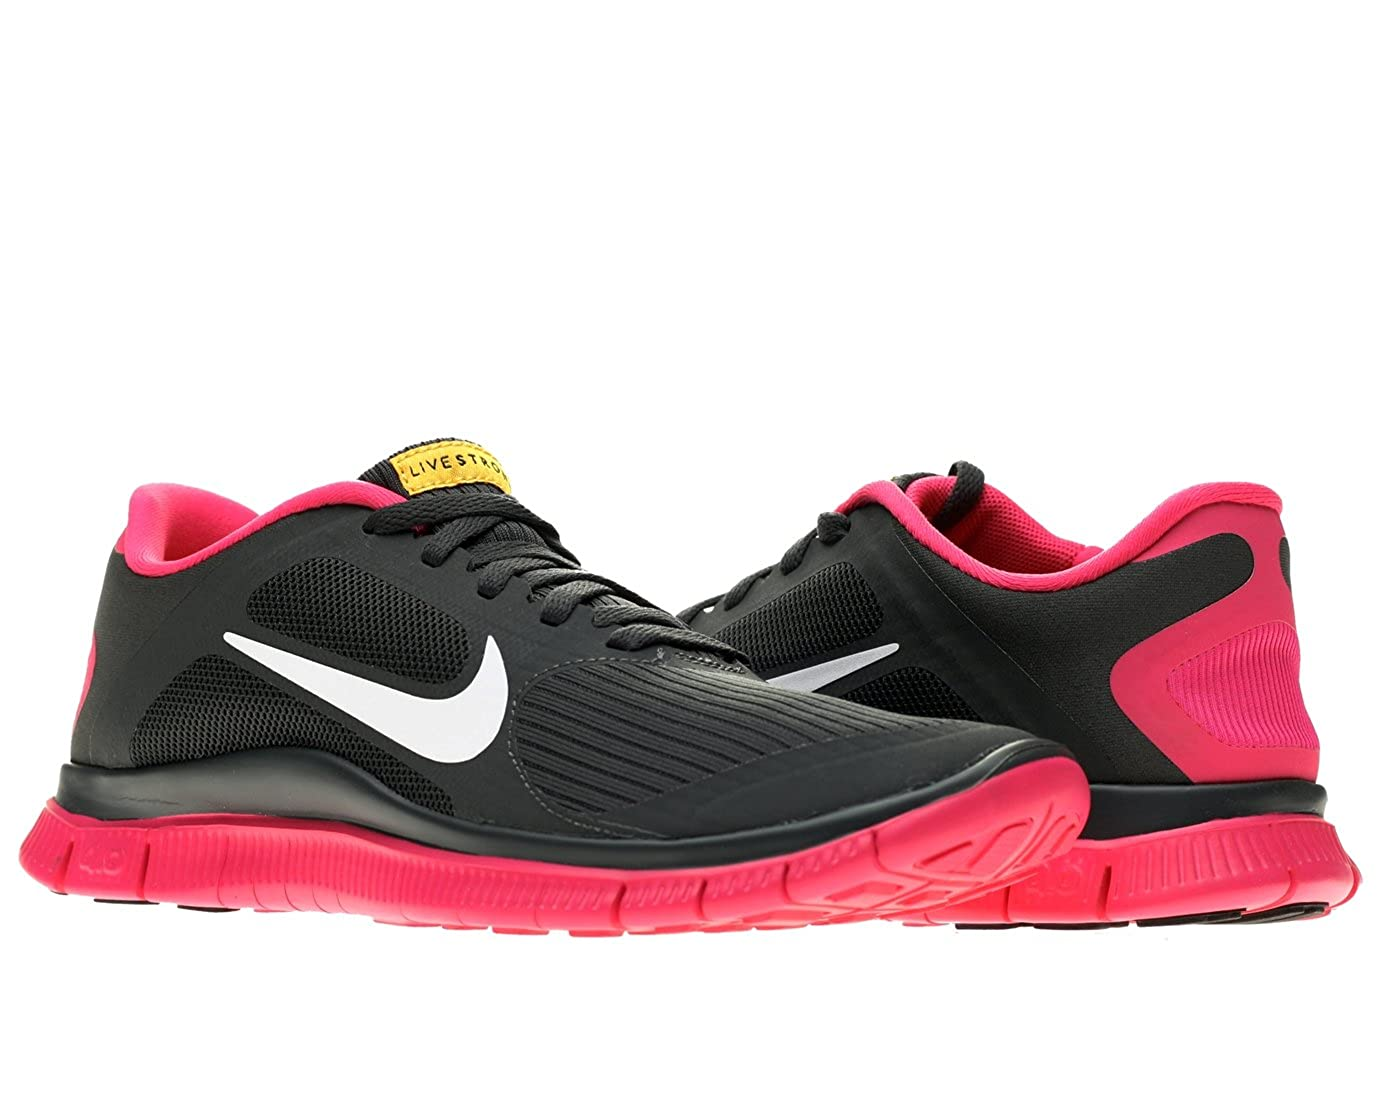 new style a0139 946b9 NIKE Free 4.0 V3 Livestrong Womens Running Shoes 586296-006